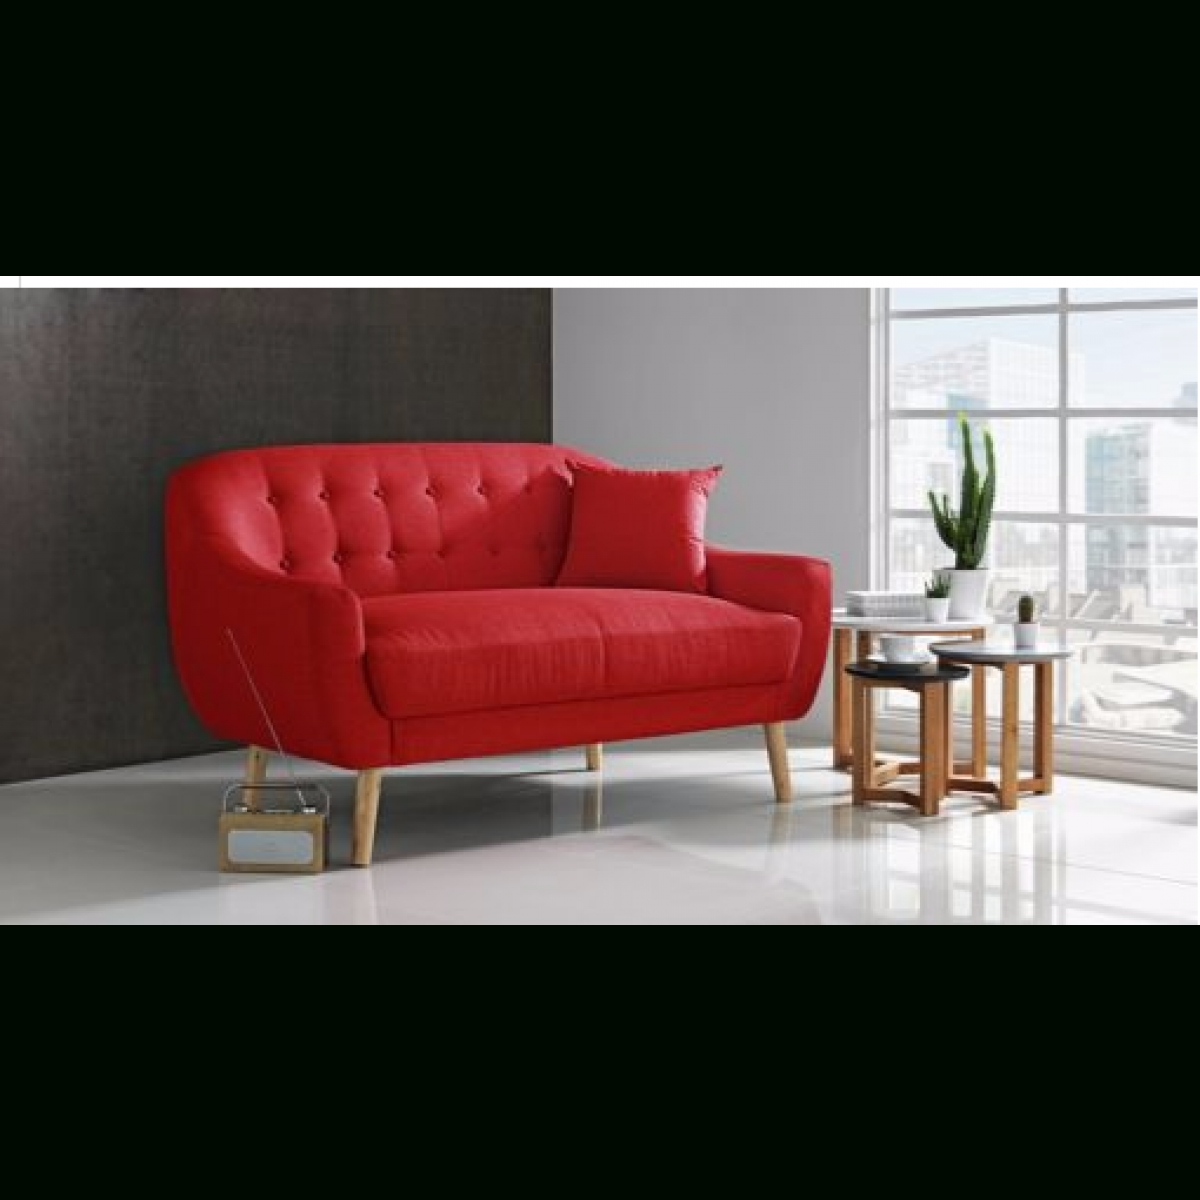 Hygena Lexie Retro Compact Fabric 2 Seater Sofa – Poppy Red For Best And Newest Cheap Retro Sofas (View 7 of 20)